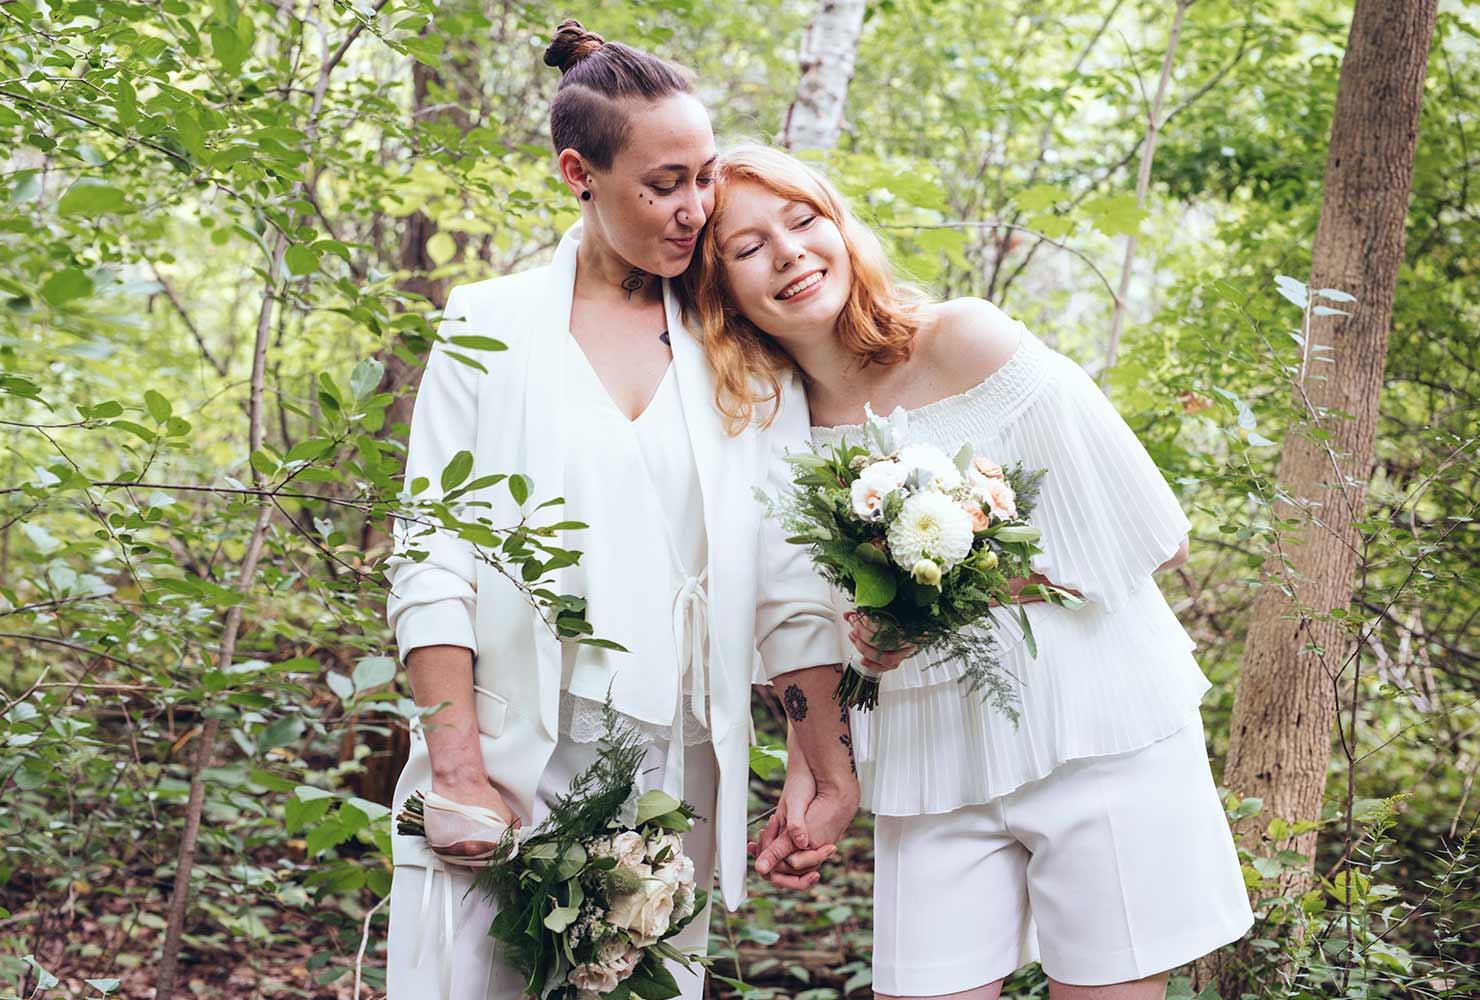 Two brides smiling at wedding in nature